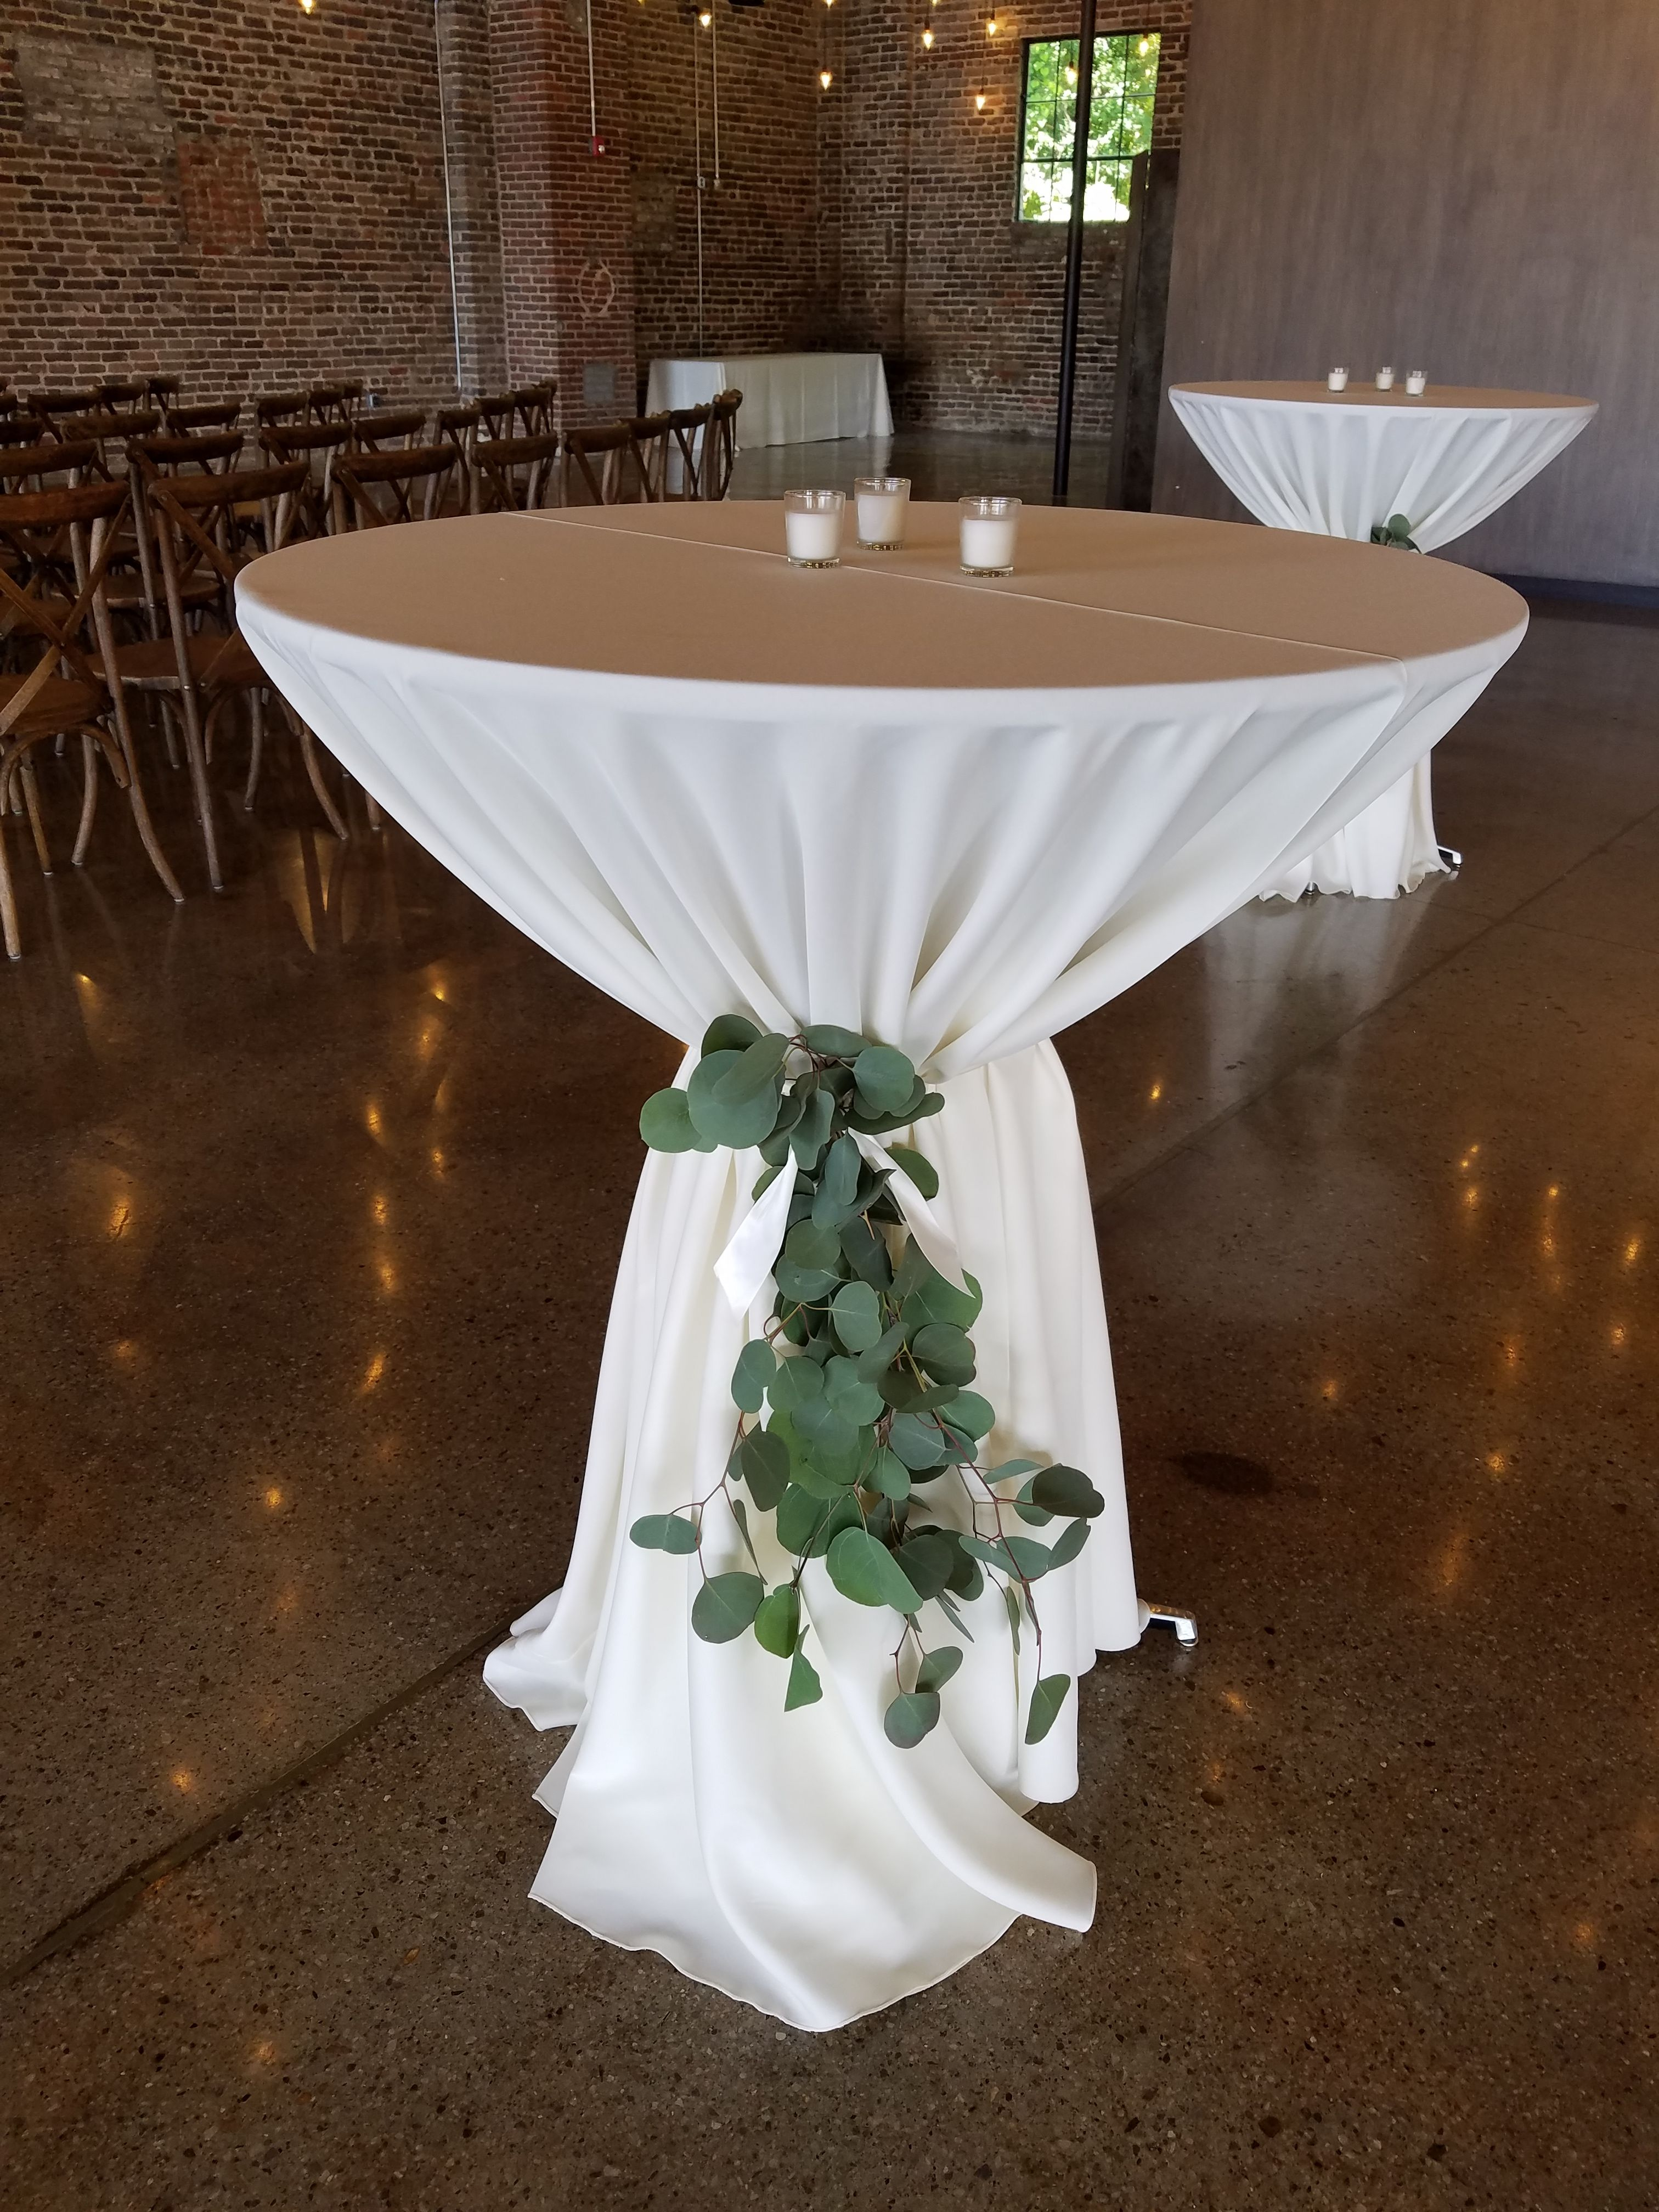 Wedding Cocktail Tables Wedding Reception Tables Greenery Tied Around Cockt Wedding Table Decorations Diy Wedding Cocktail Tables Cocktail Table Centerpieces